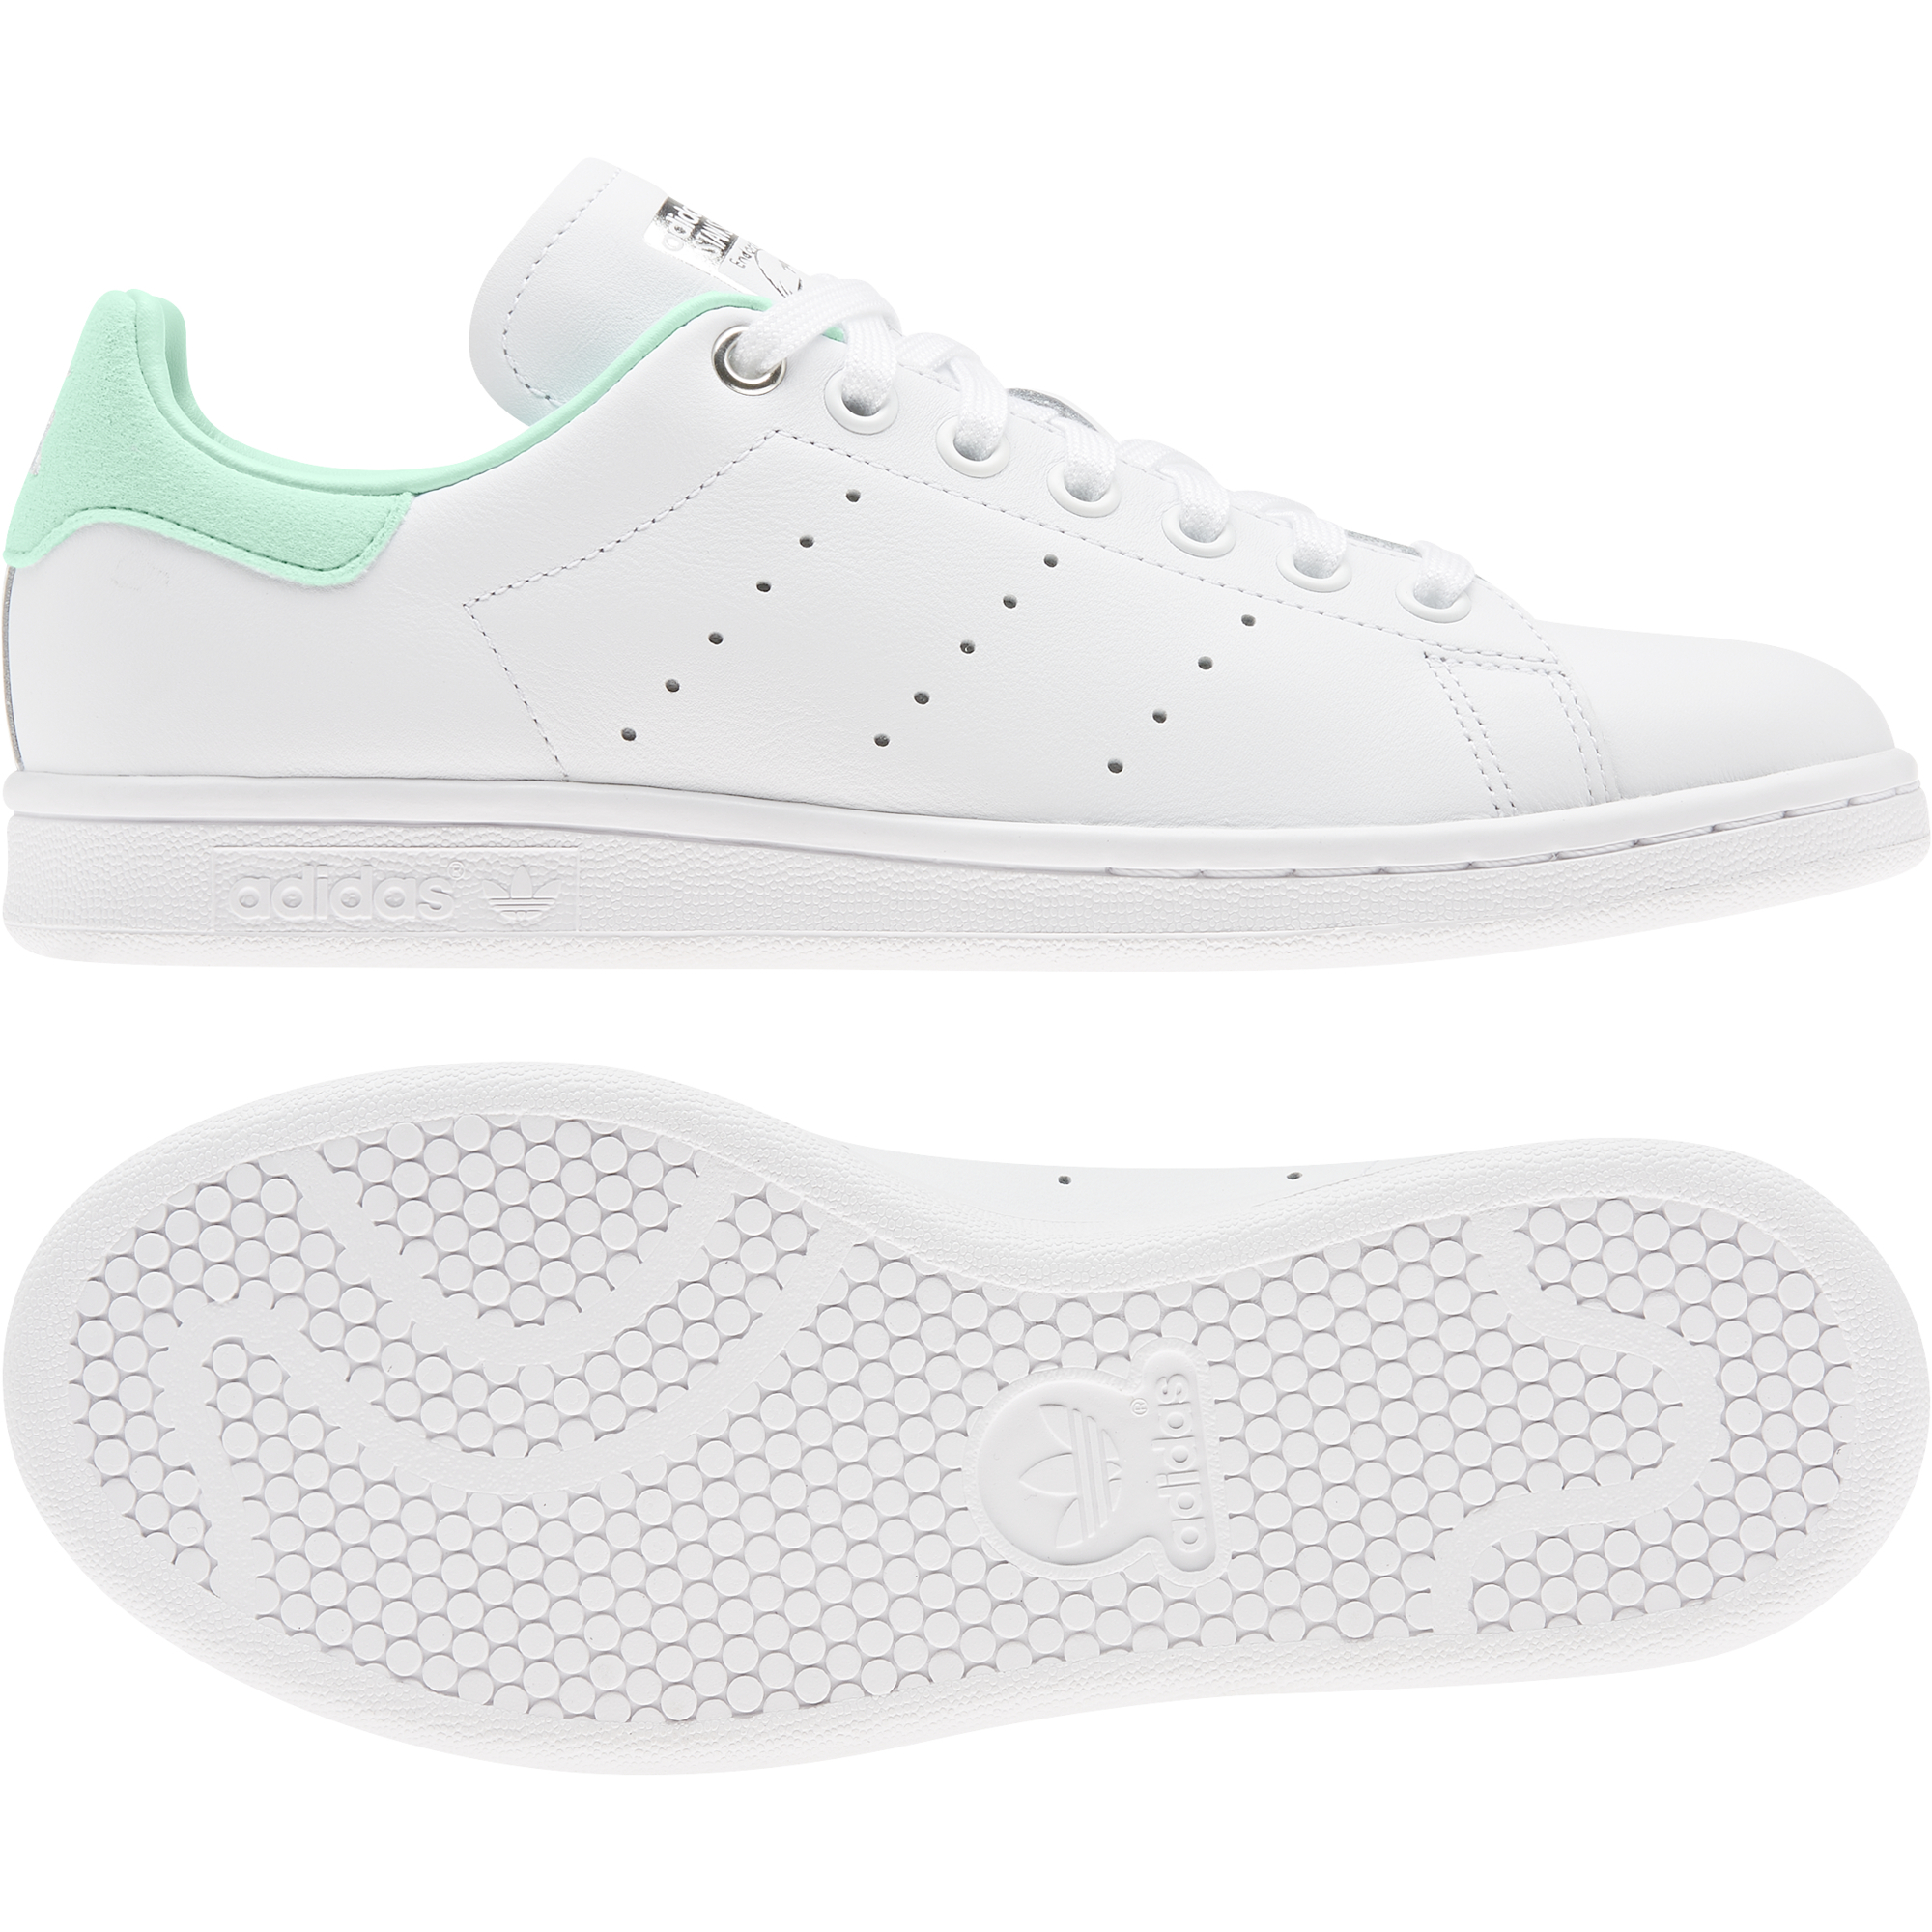 separation shoes f9094 42d9f Chaussures femme adidas Stan Smith   Alltricks.com